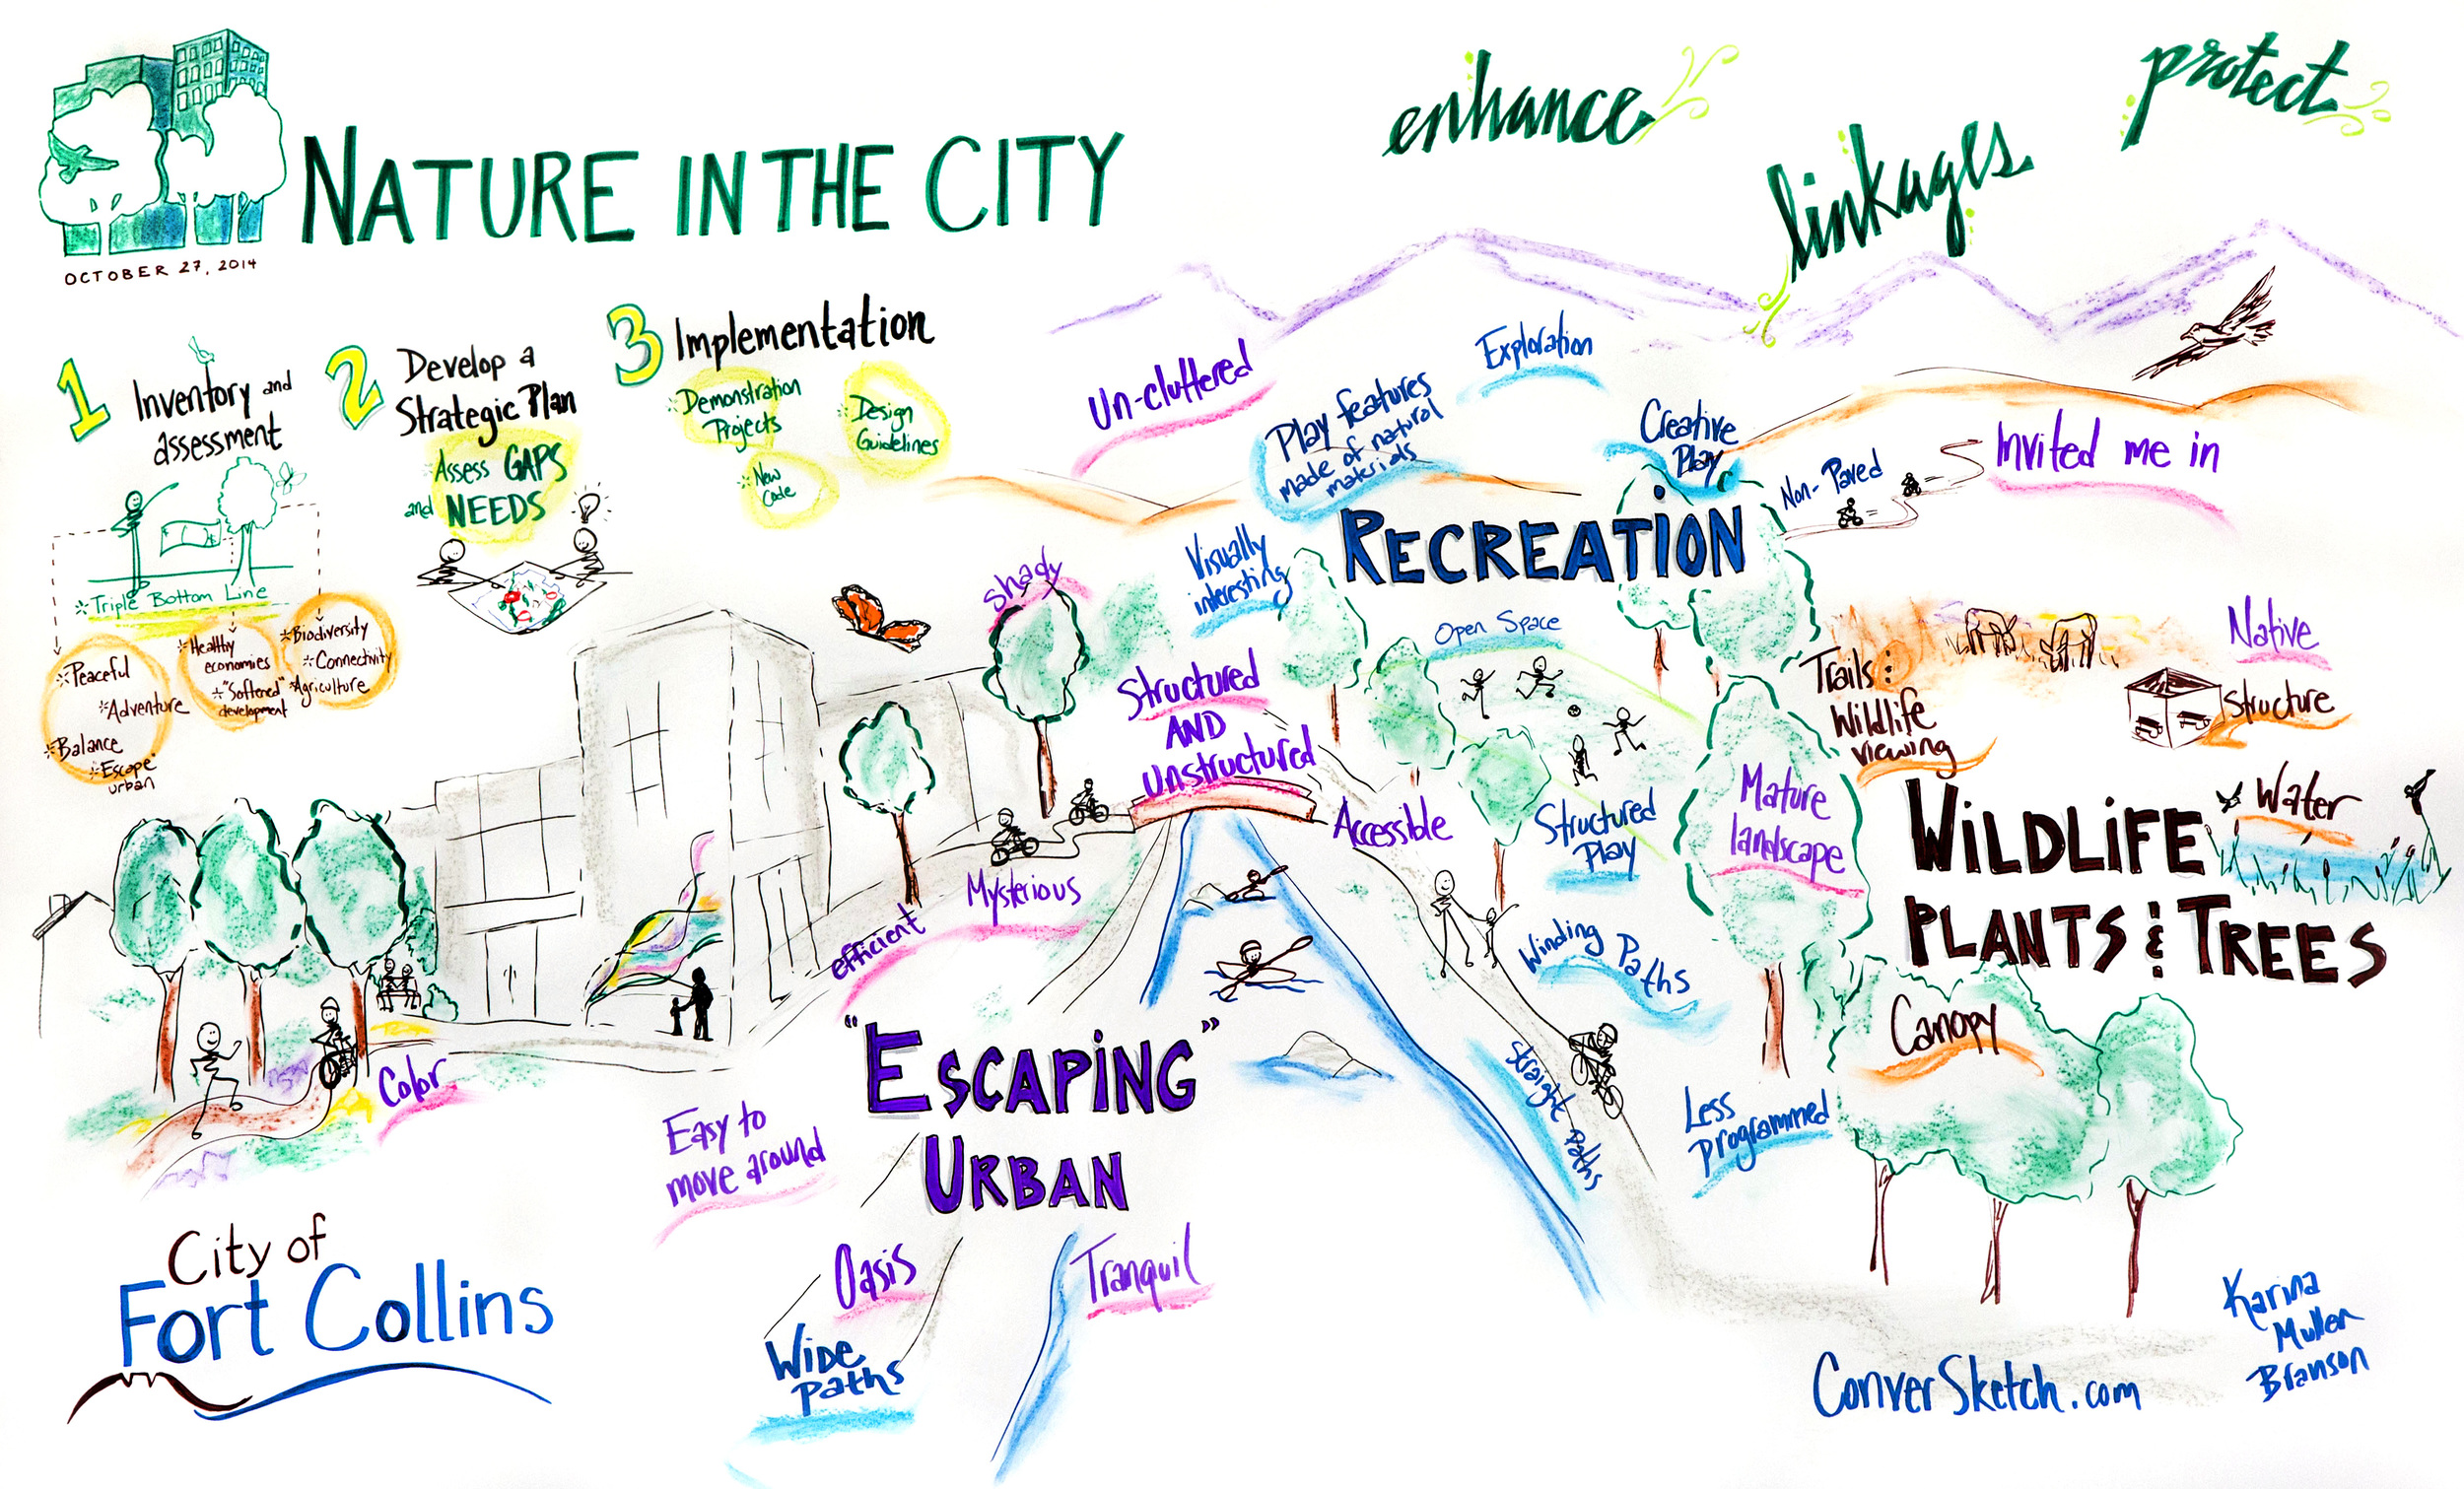 nature-in-the-city-chart